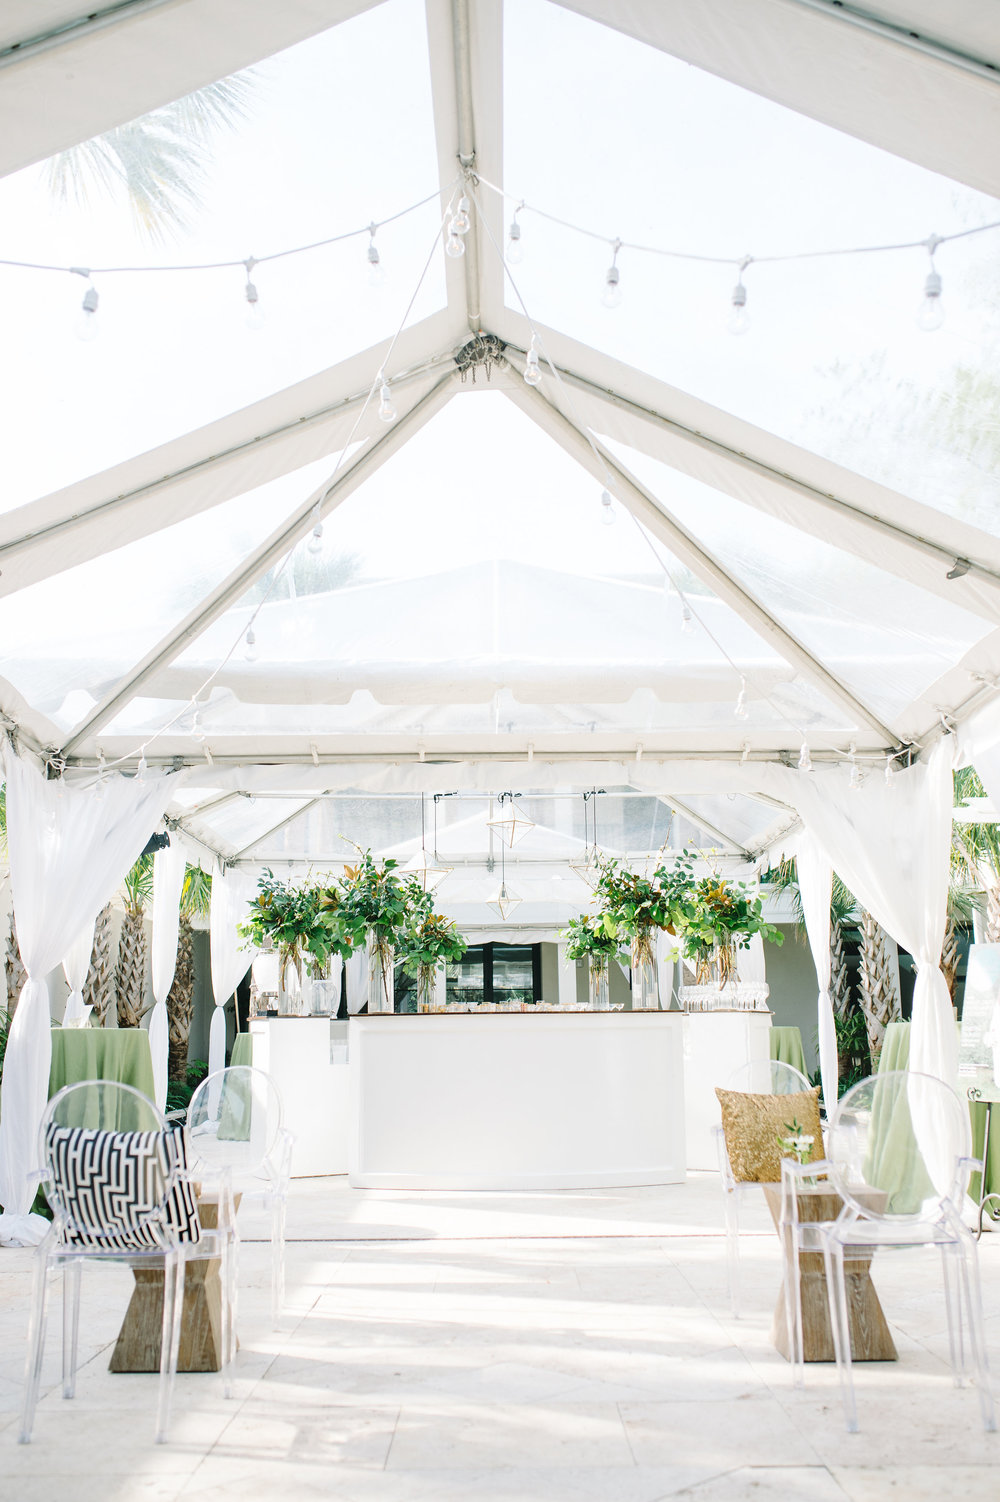 sperry-tents-charleston-clear-tent-cannon-green-charleston-event-venue-and-catering-west-elm-event-furnishings